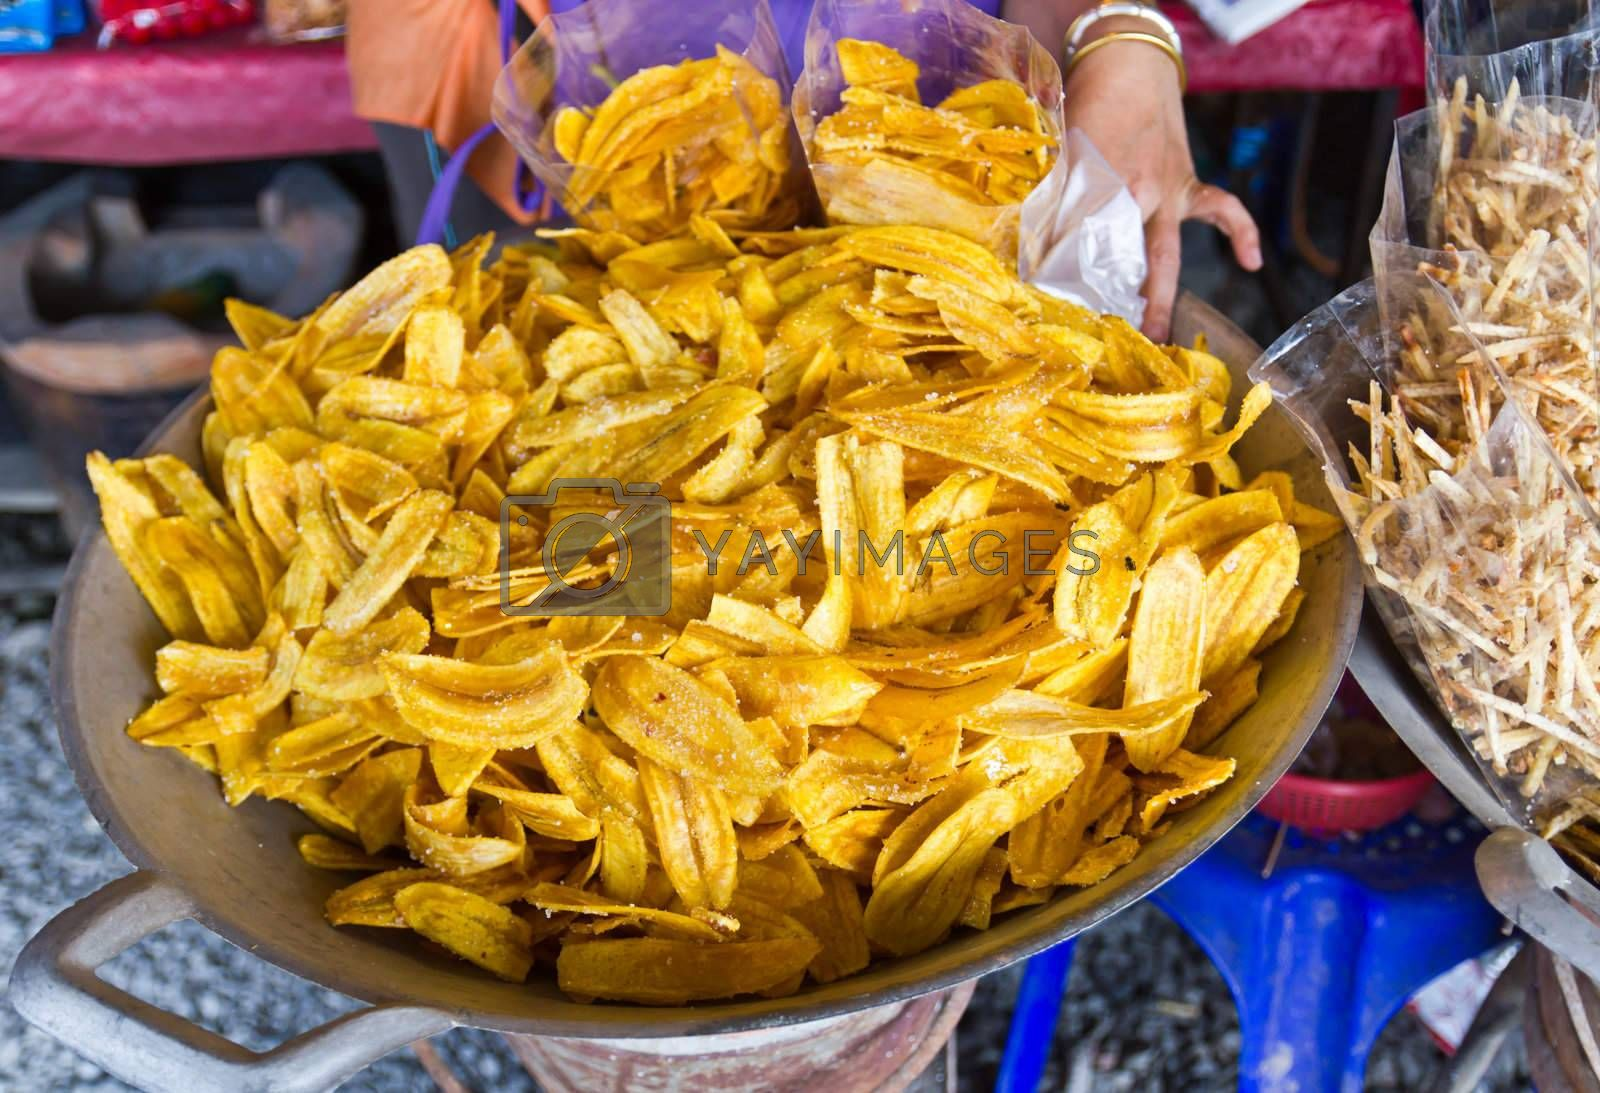 Banana chip for sale in the market